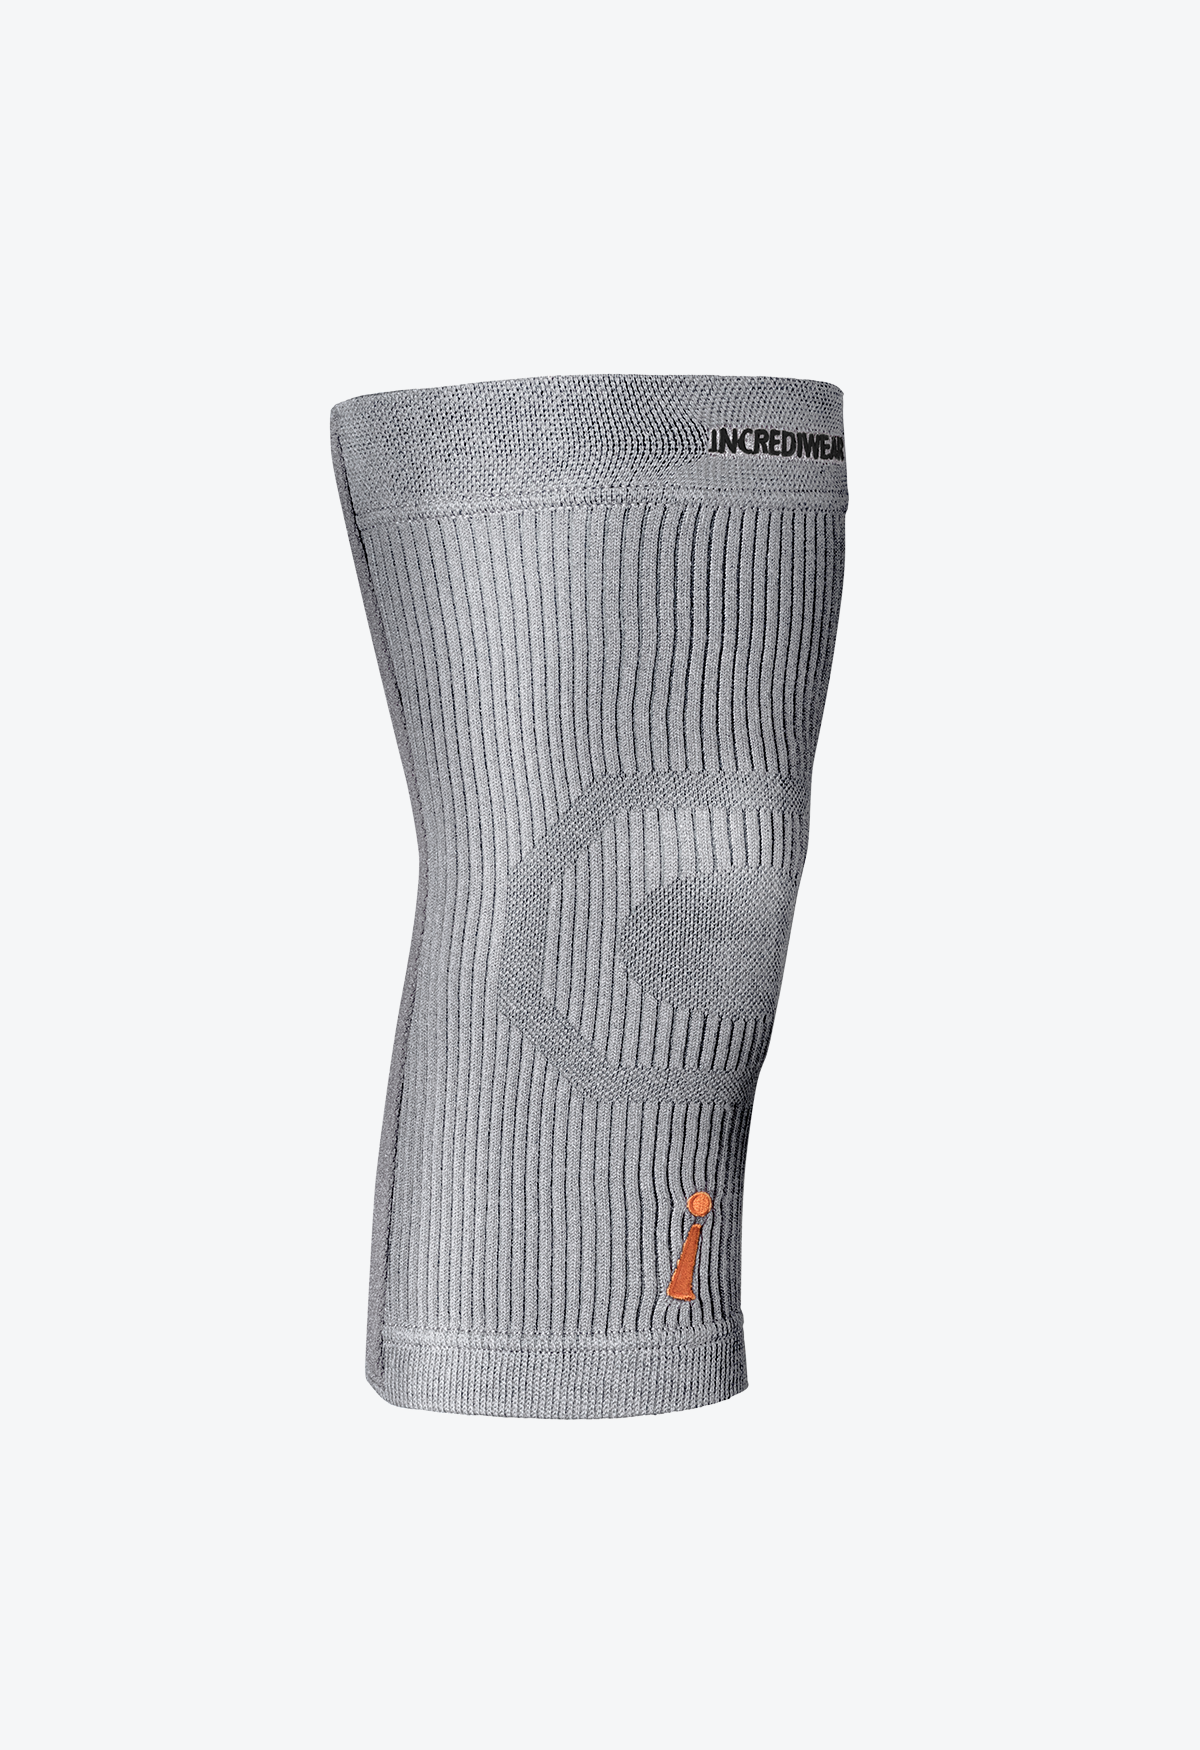 2069ae3d14 Incrediwear Knee Sleeve Incrediwear Knee Sleeve ...